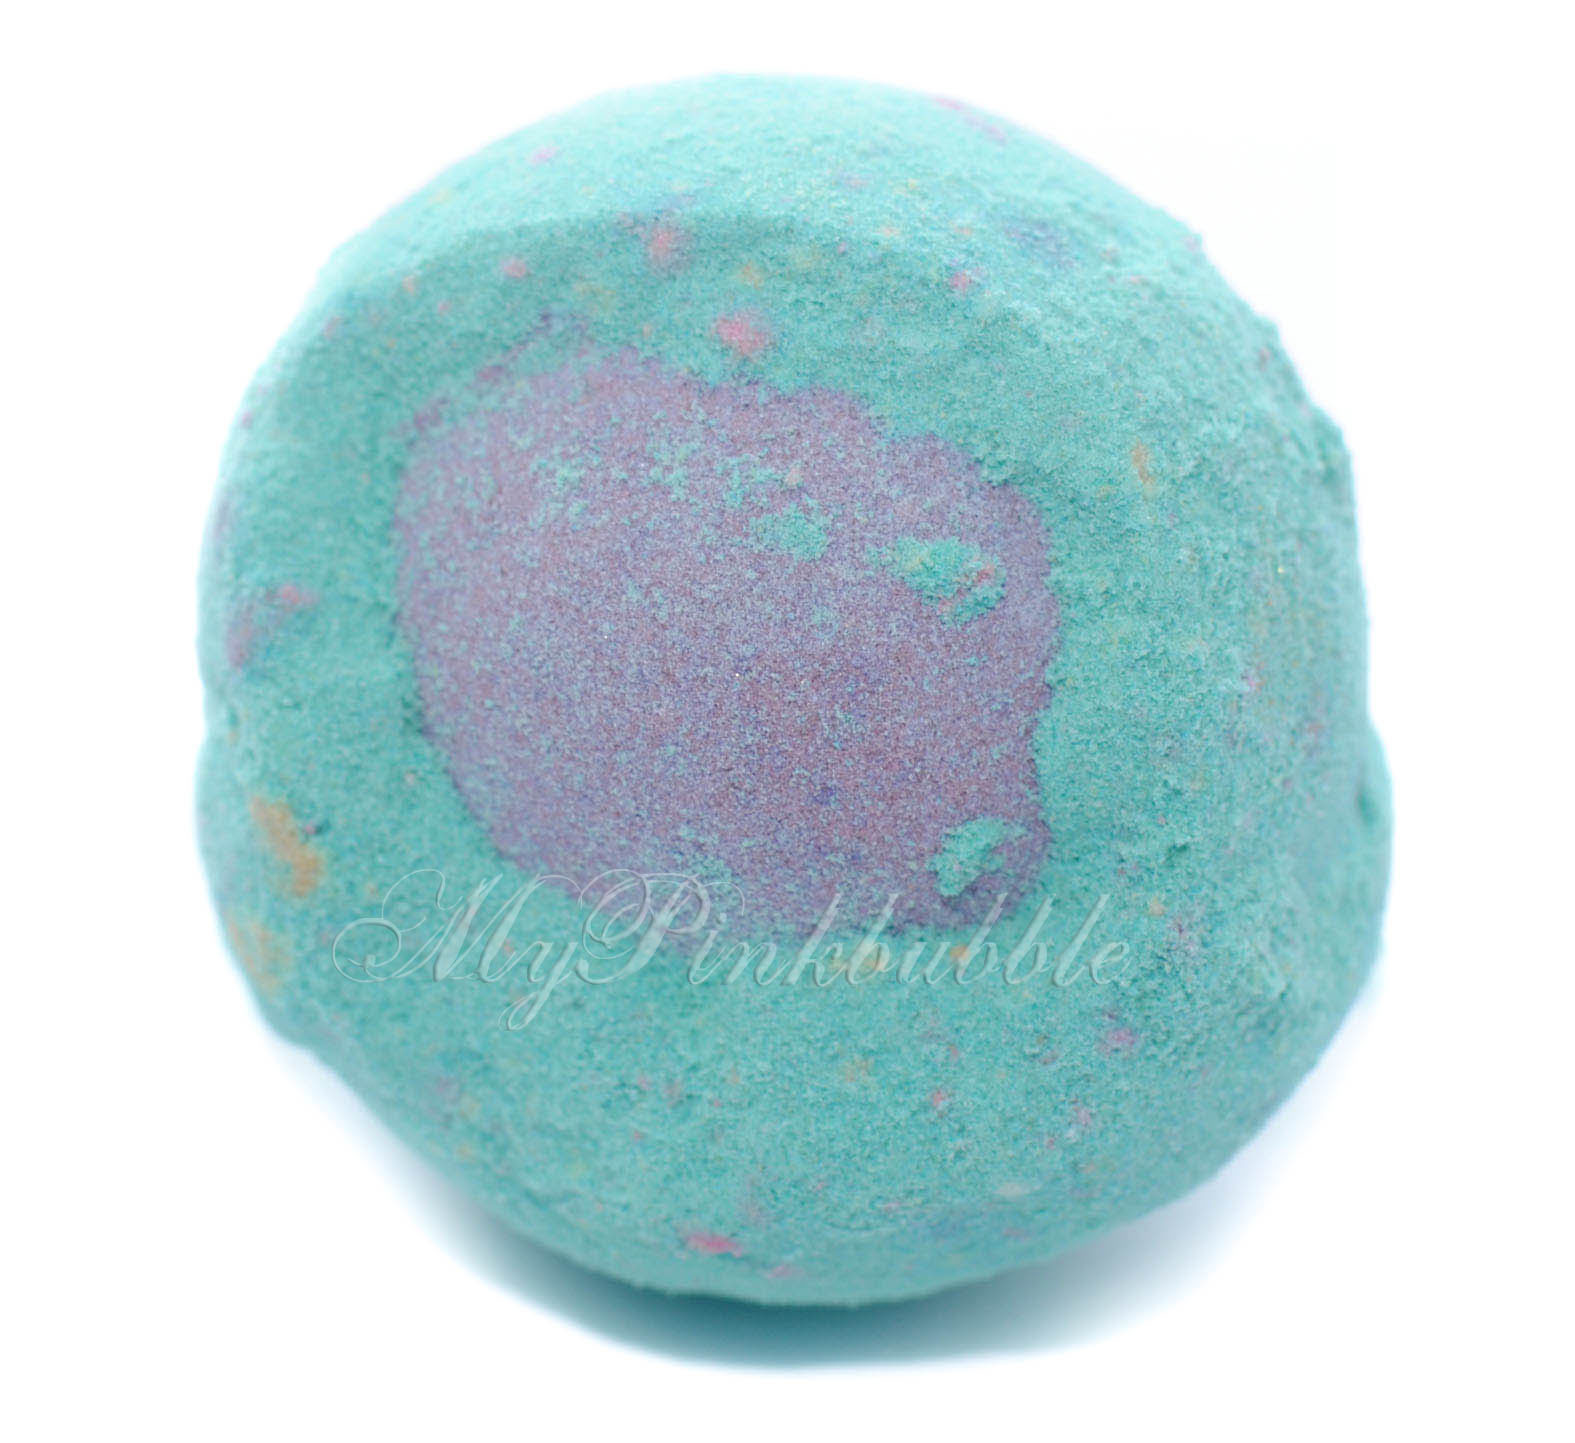 Lush burbuja Lord of misrule